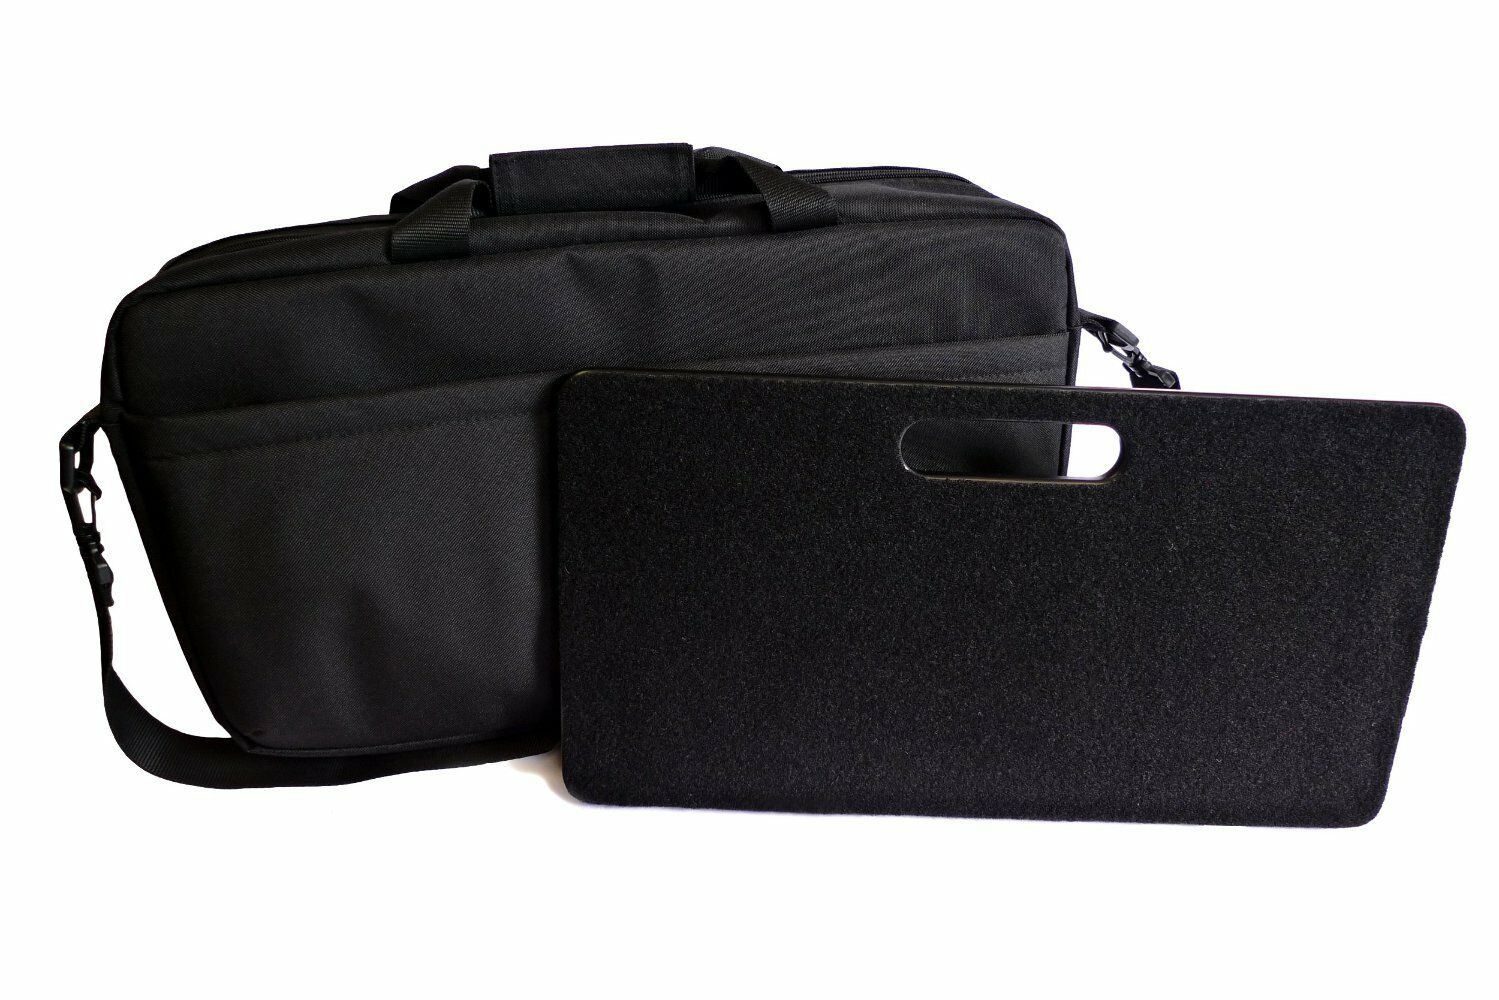 Diago Commuter Pedal Board Bag 49cm x 26cm x 12cm